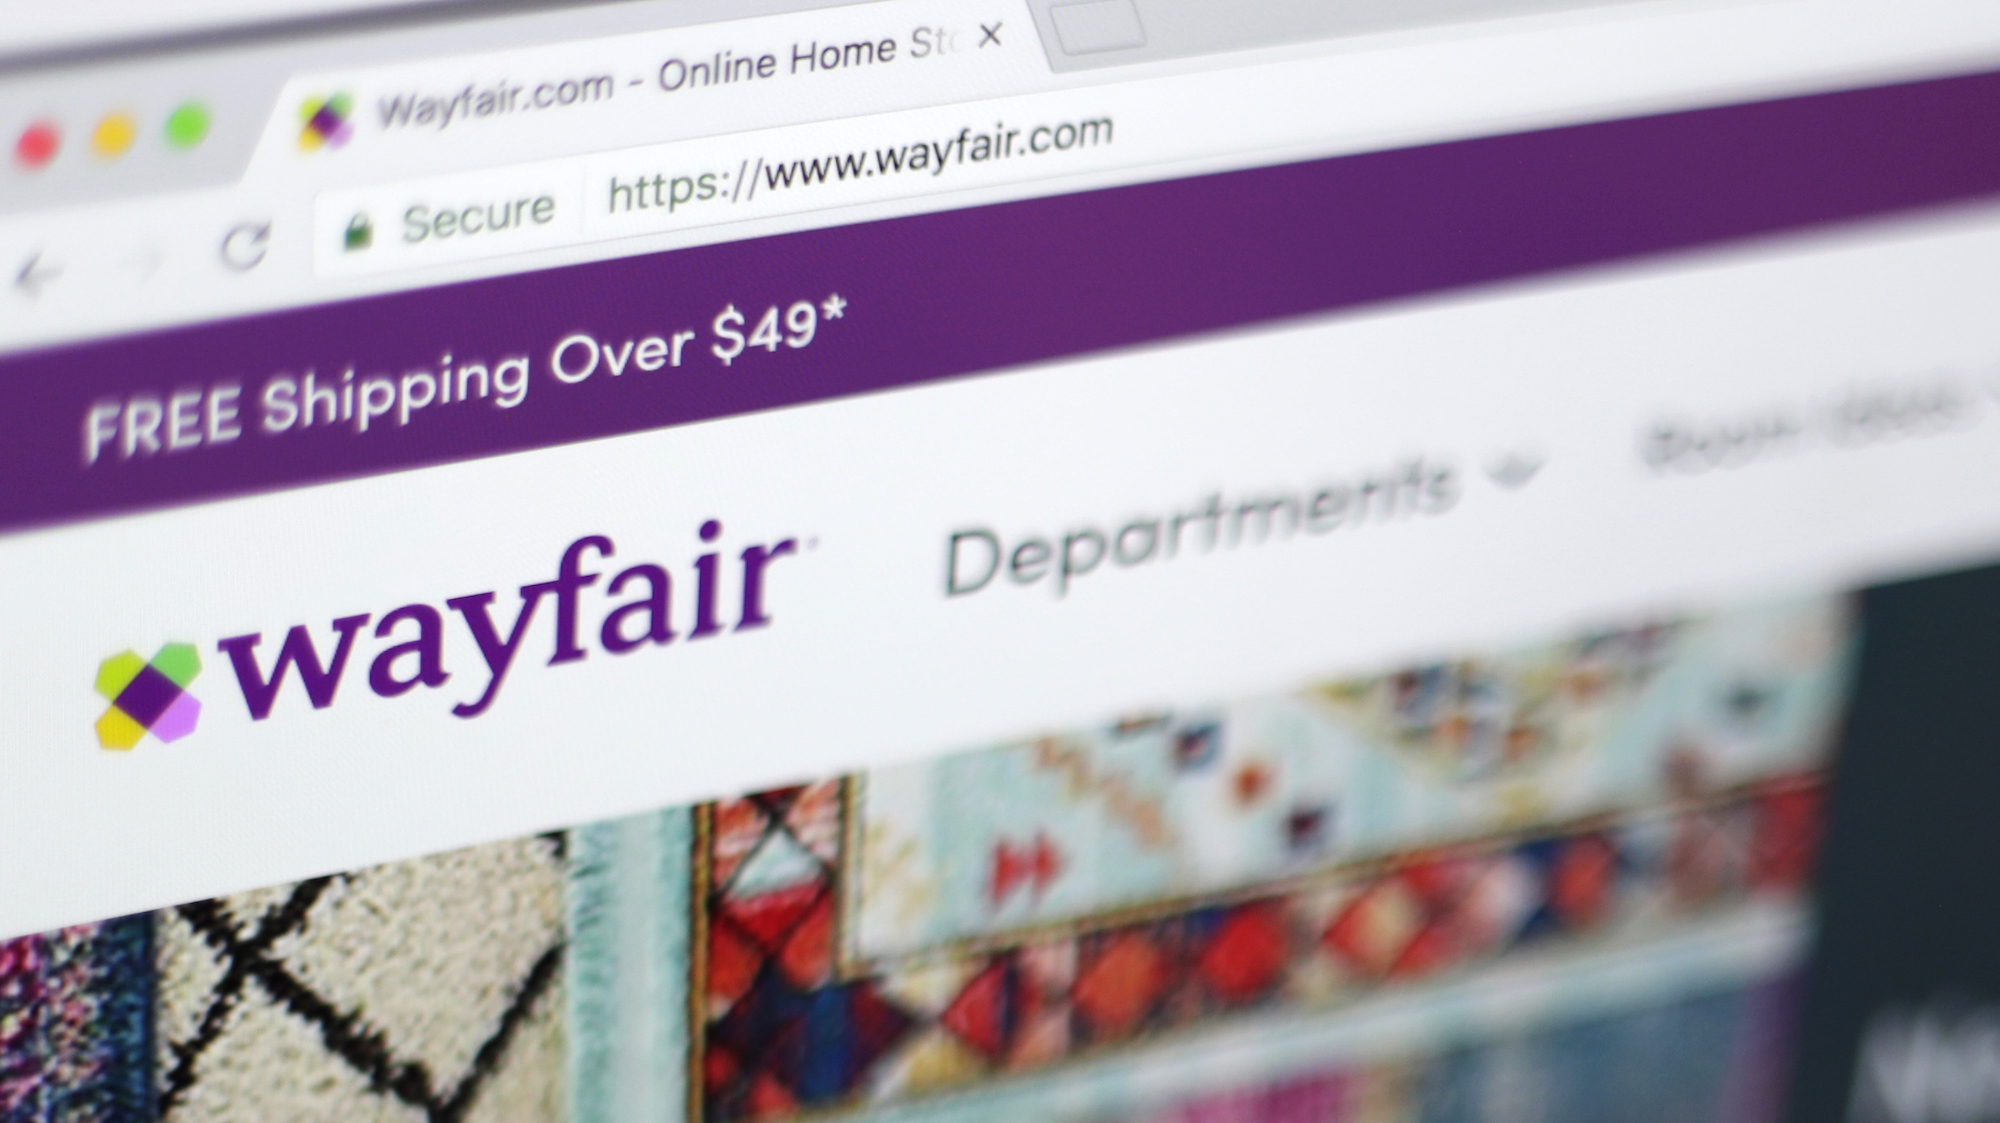 Wayfair ruling allows online sales taxes, but there's no rush